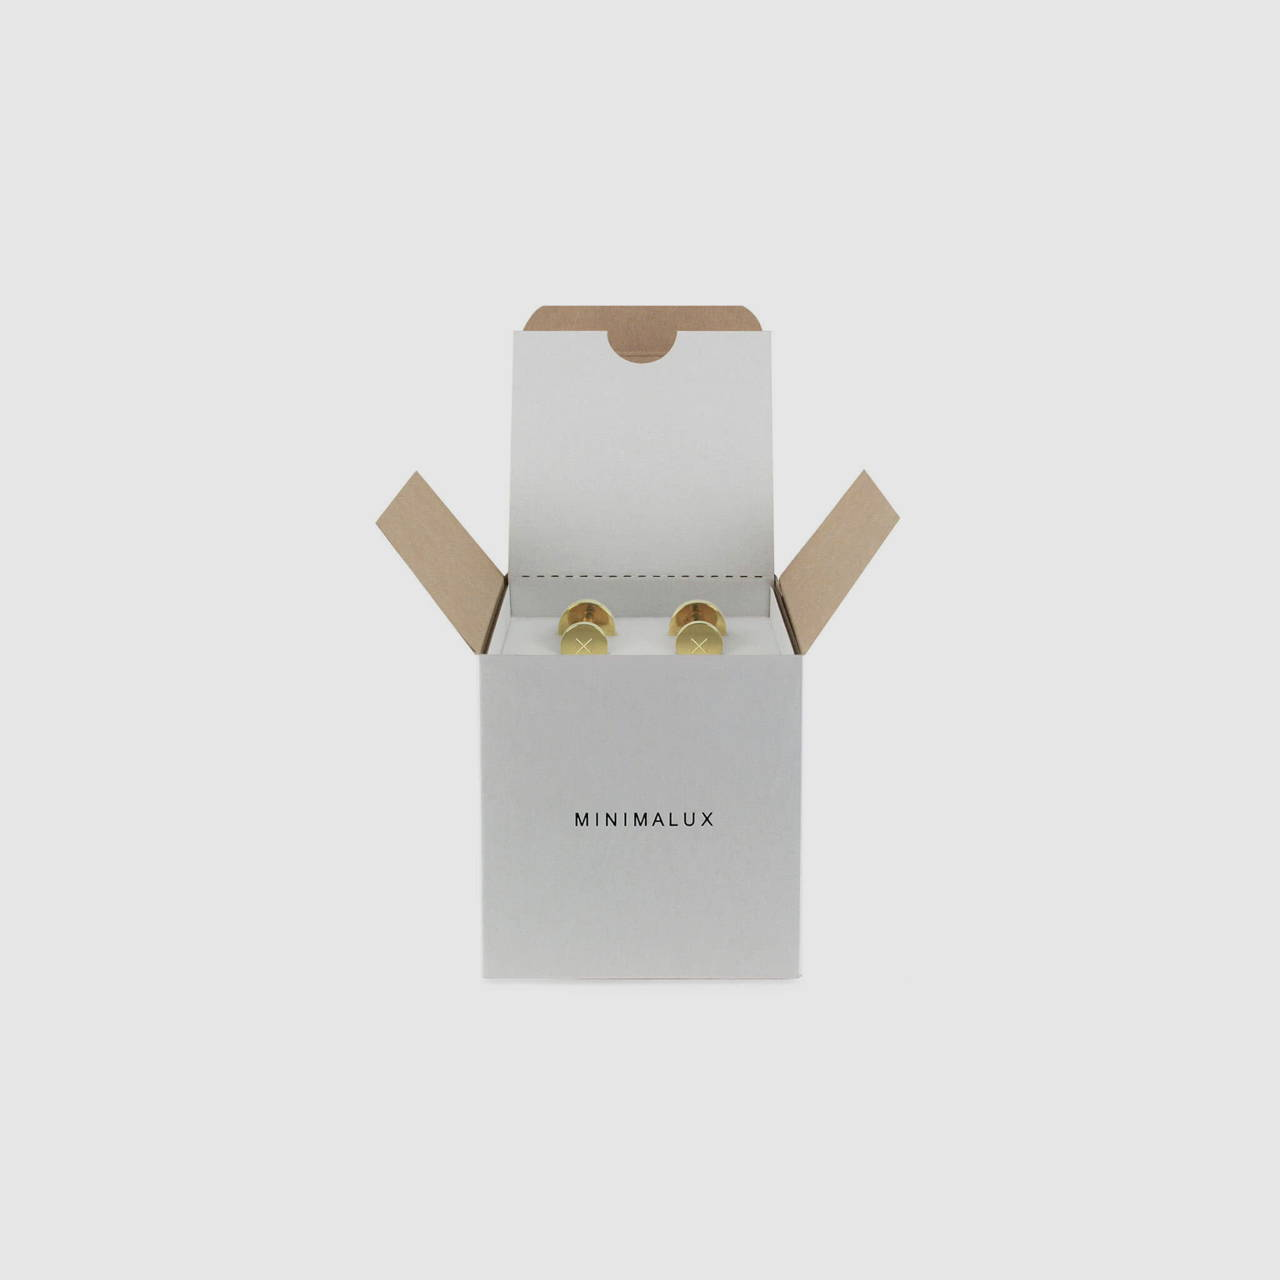 Polished Brass Cufflink packaging